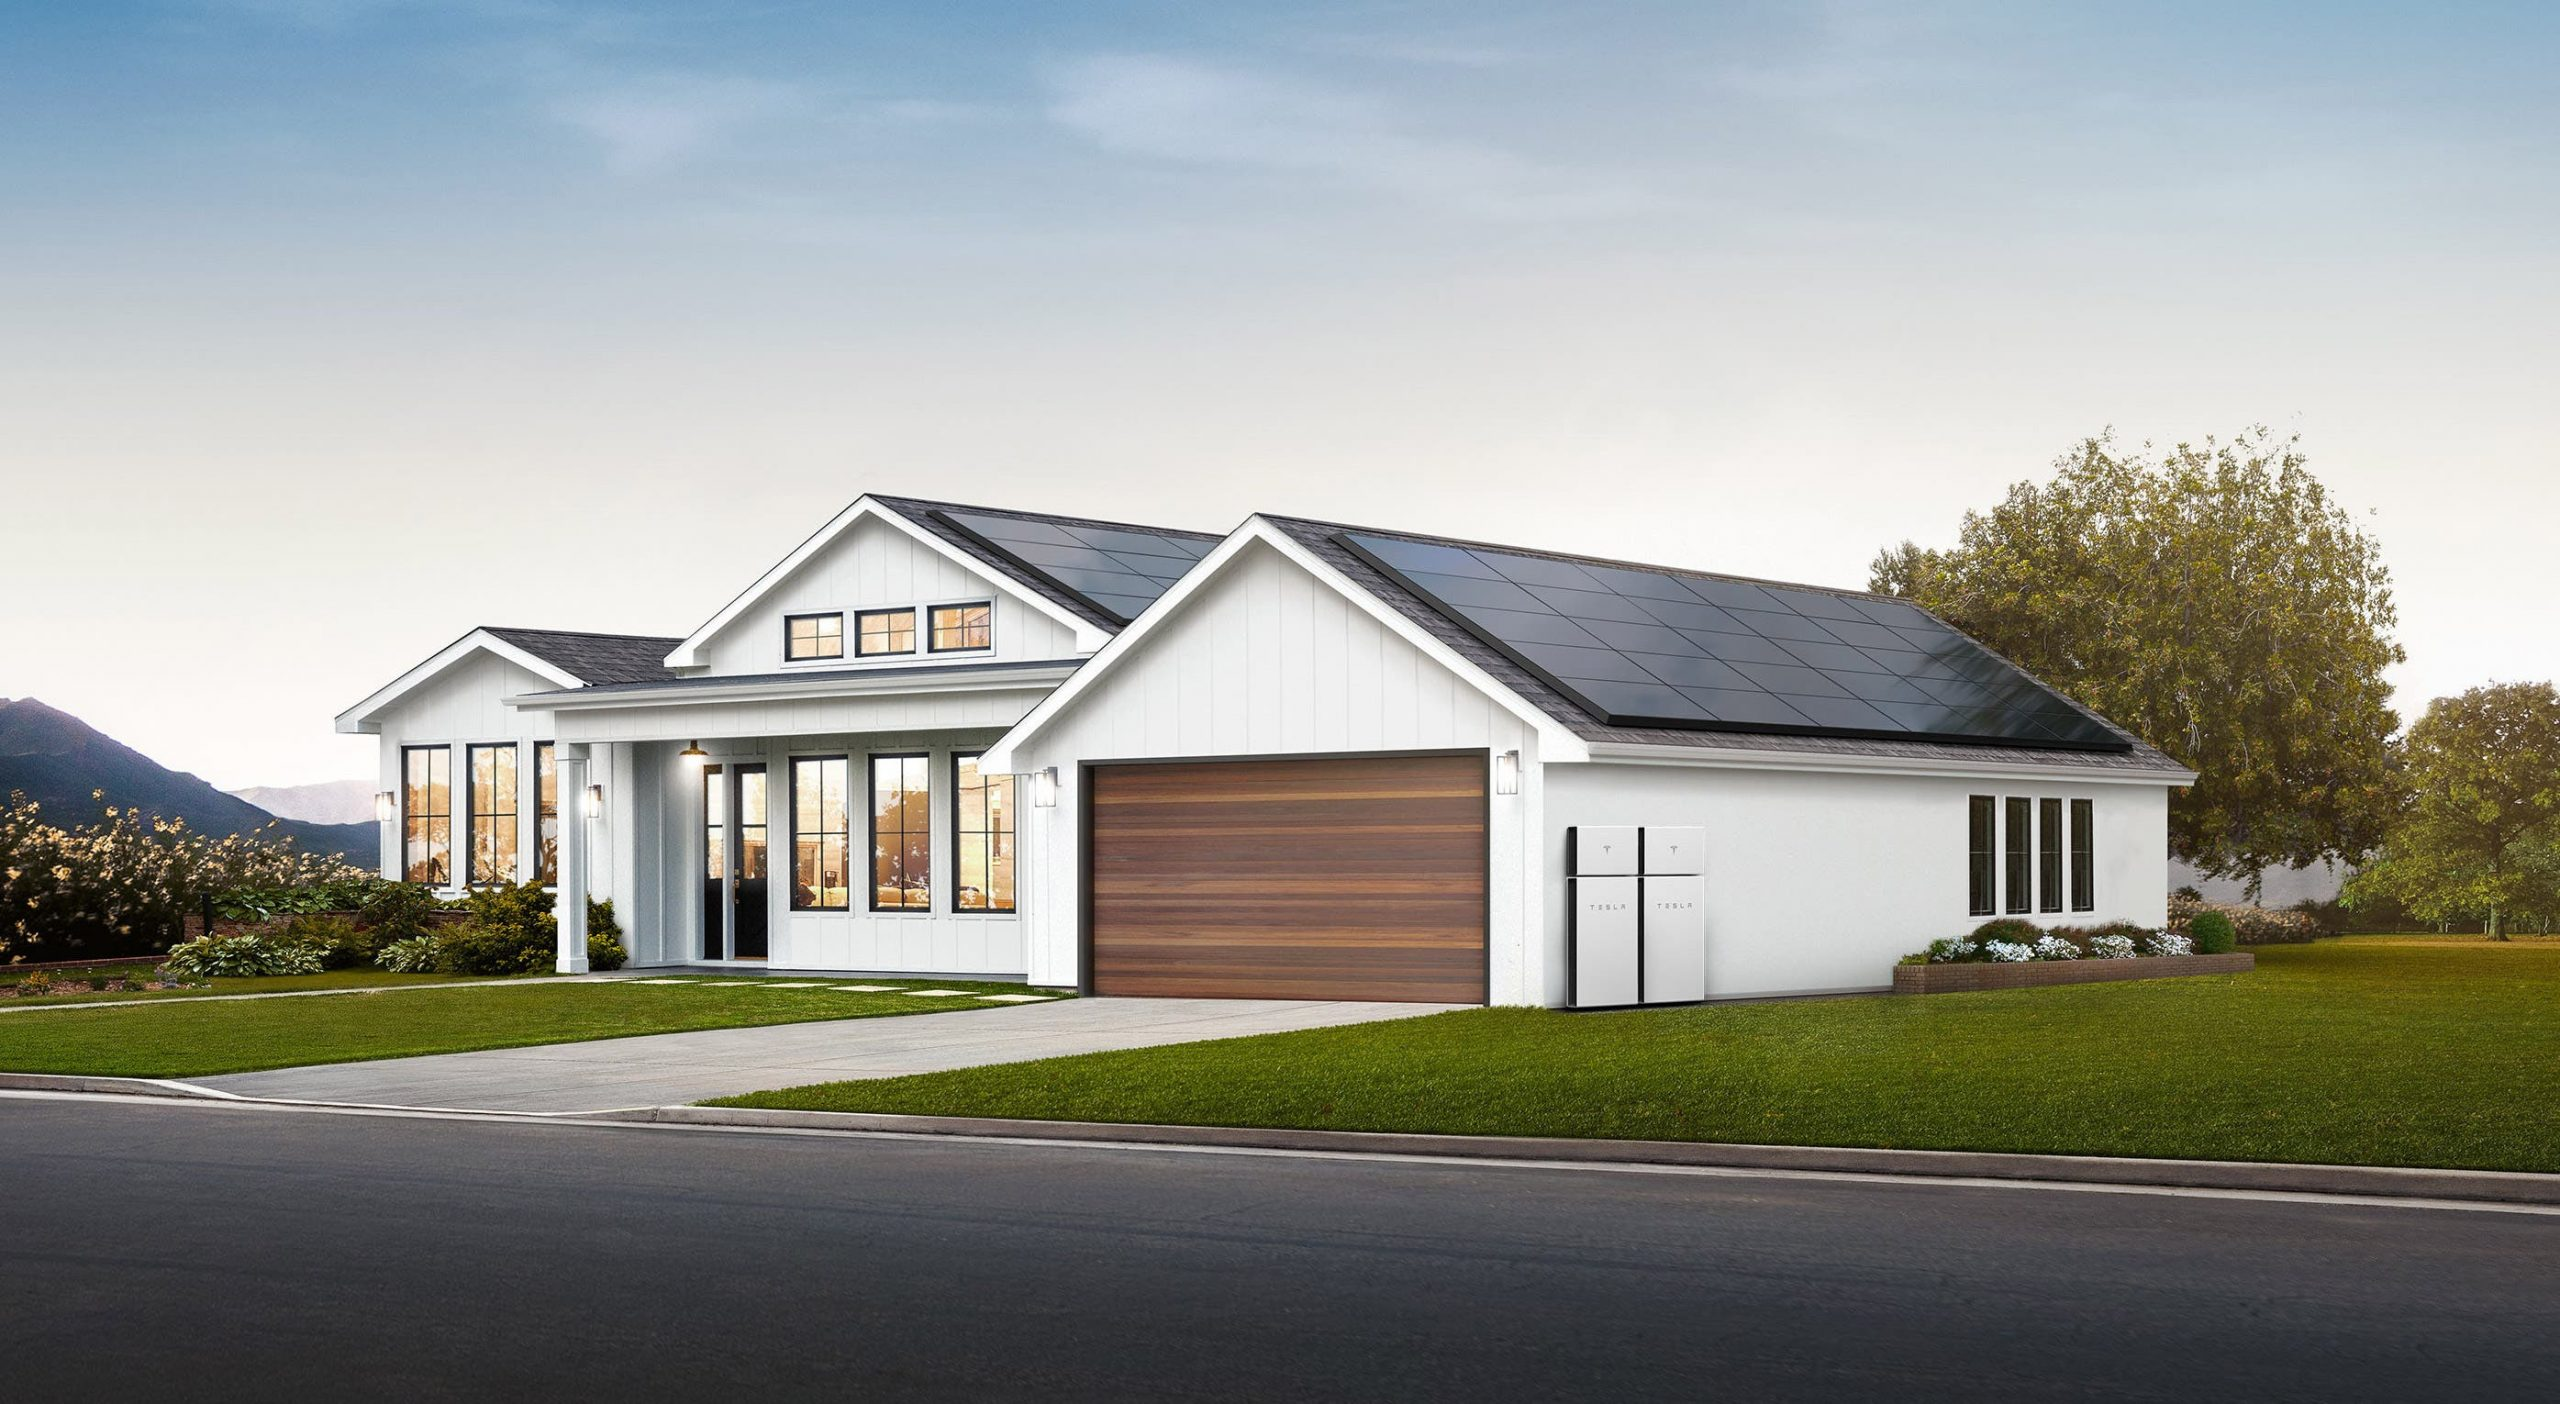 Tesla Cuts Cost Of Solar Panels And Solar Roof With New $500 Referral Bonus